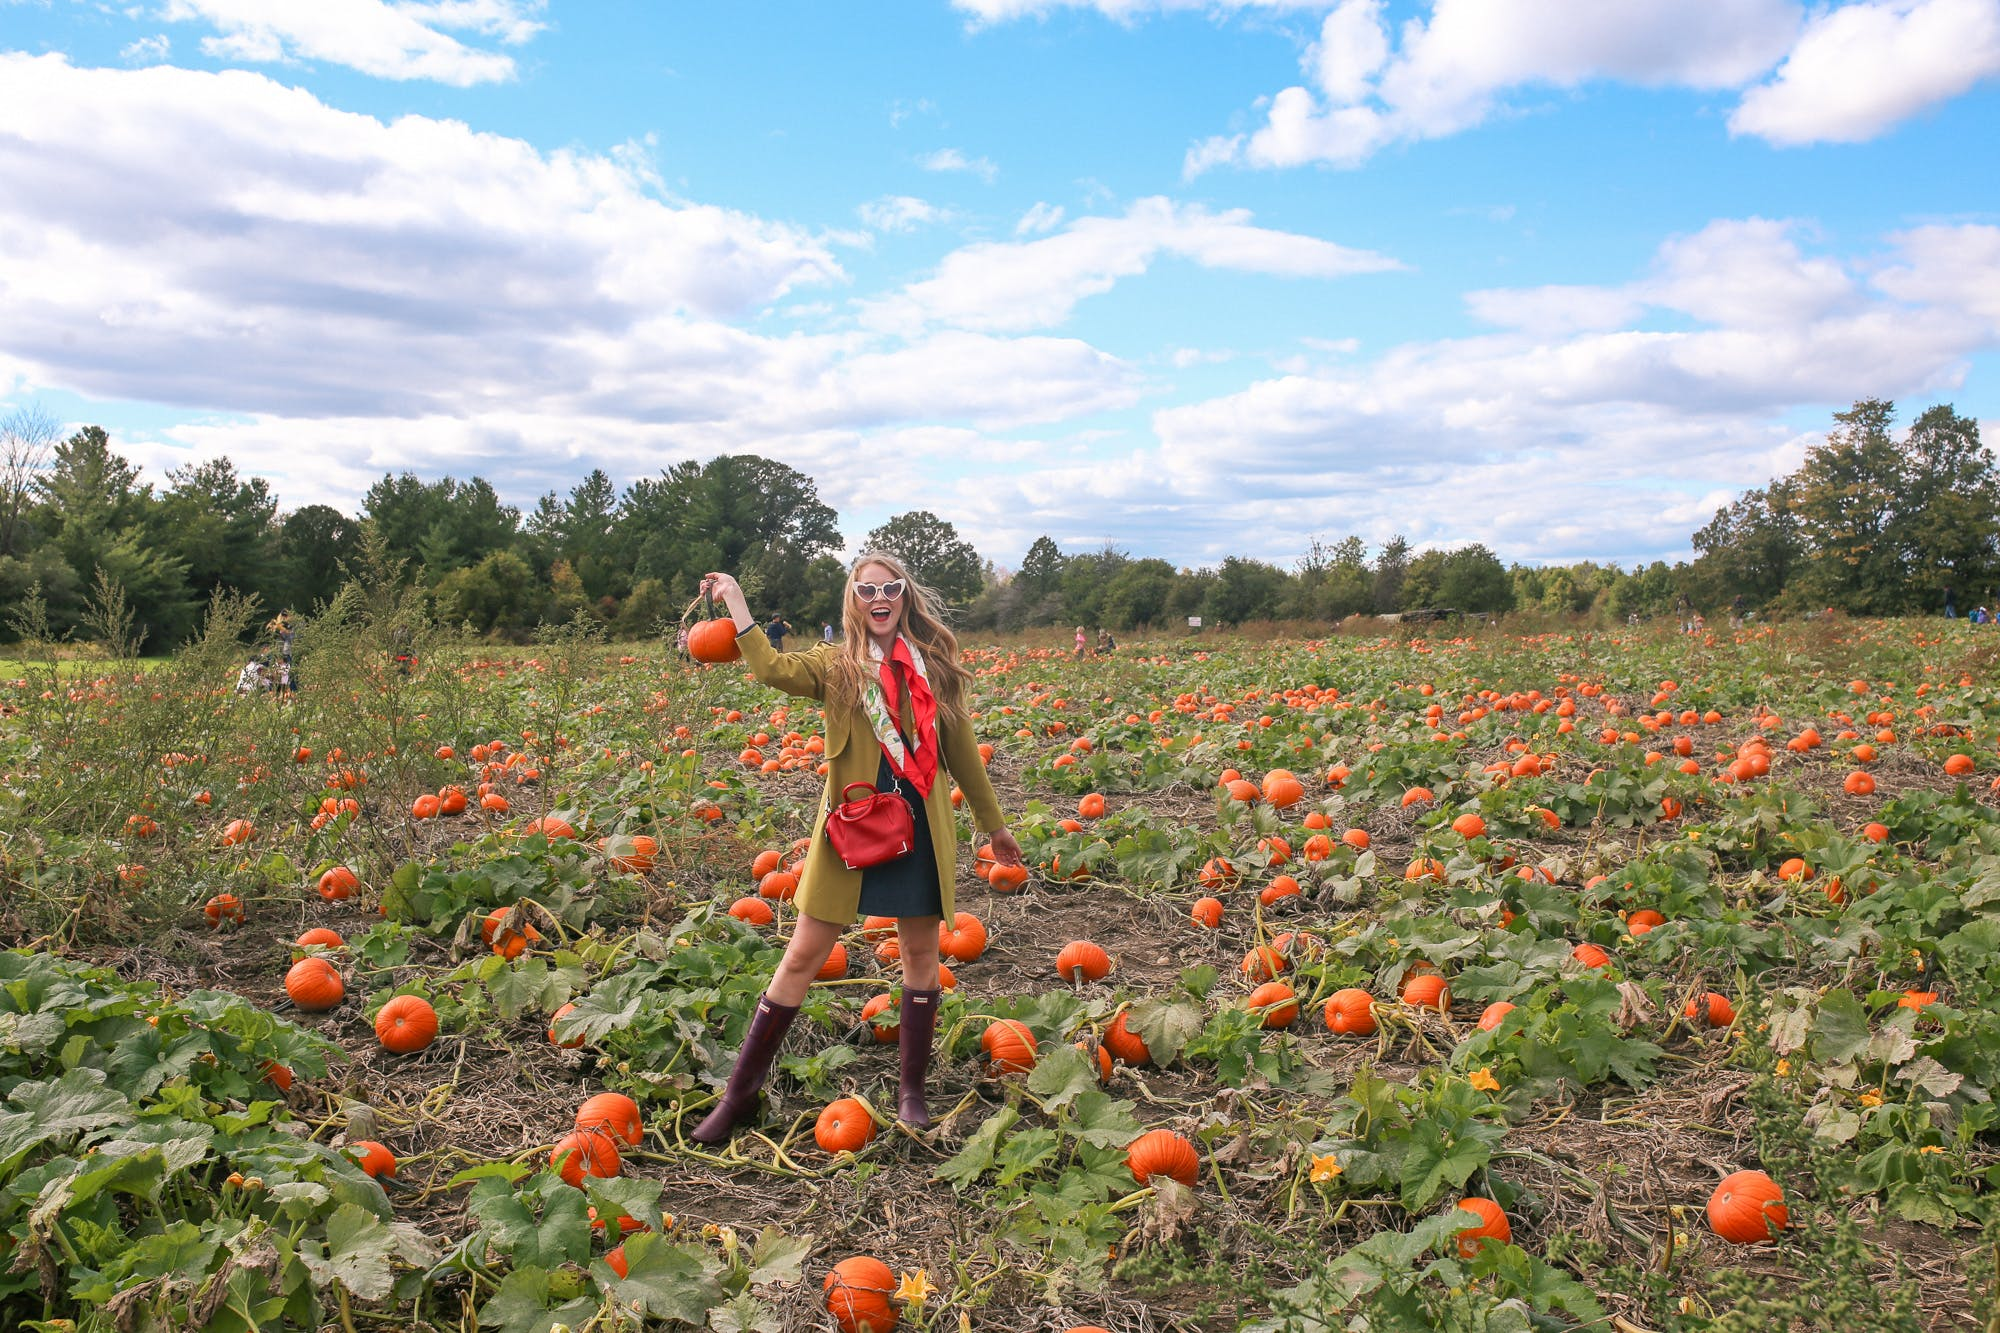 What I wore to go to a pumpkin patch: Hunter boots are a must for muddy fields, and a silk scarf is super chic.